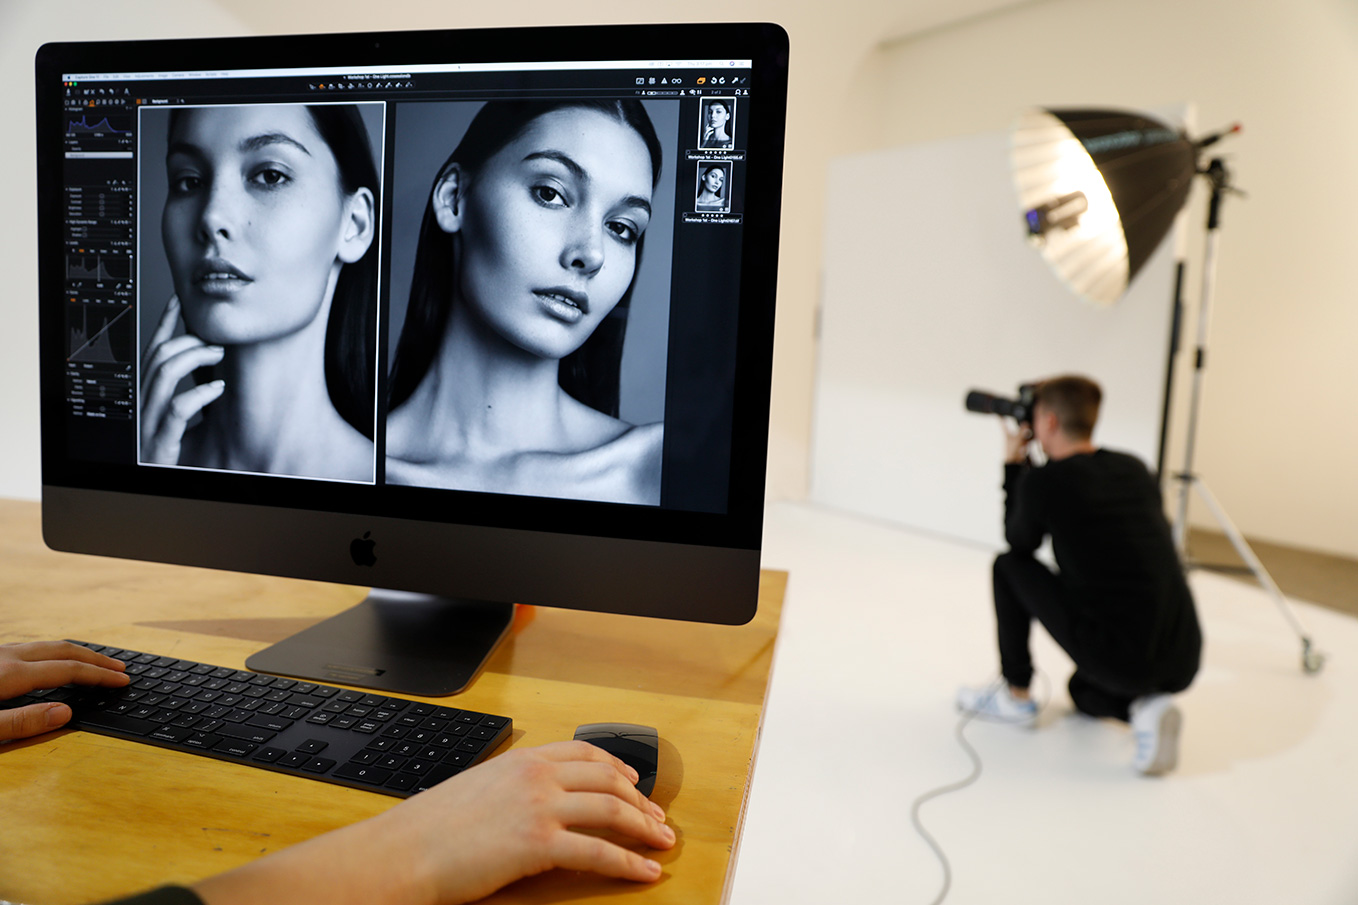 SUSTUDIOS hires digital and lighting for photography and cinema shoots